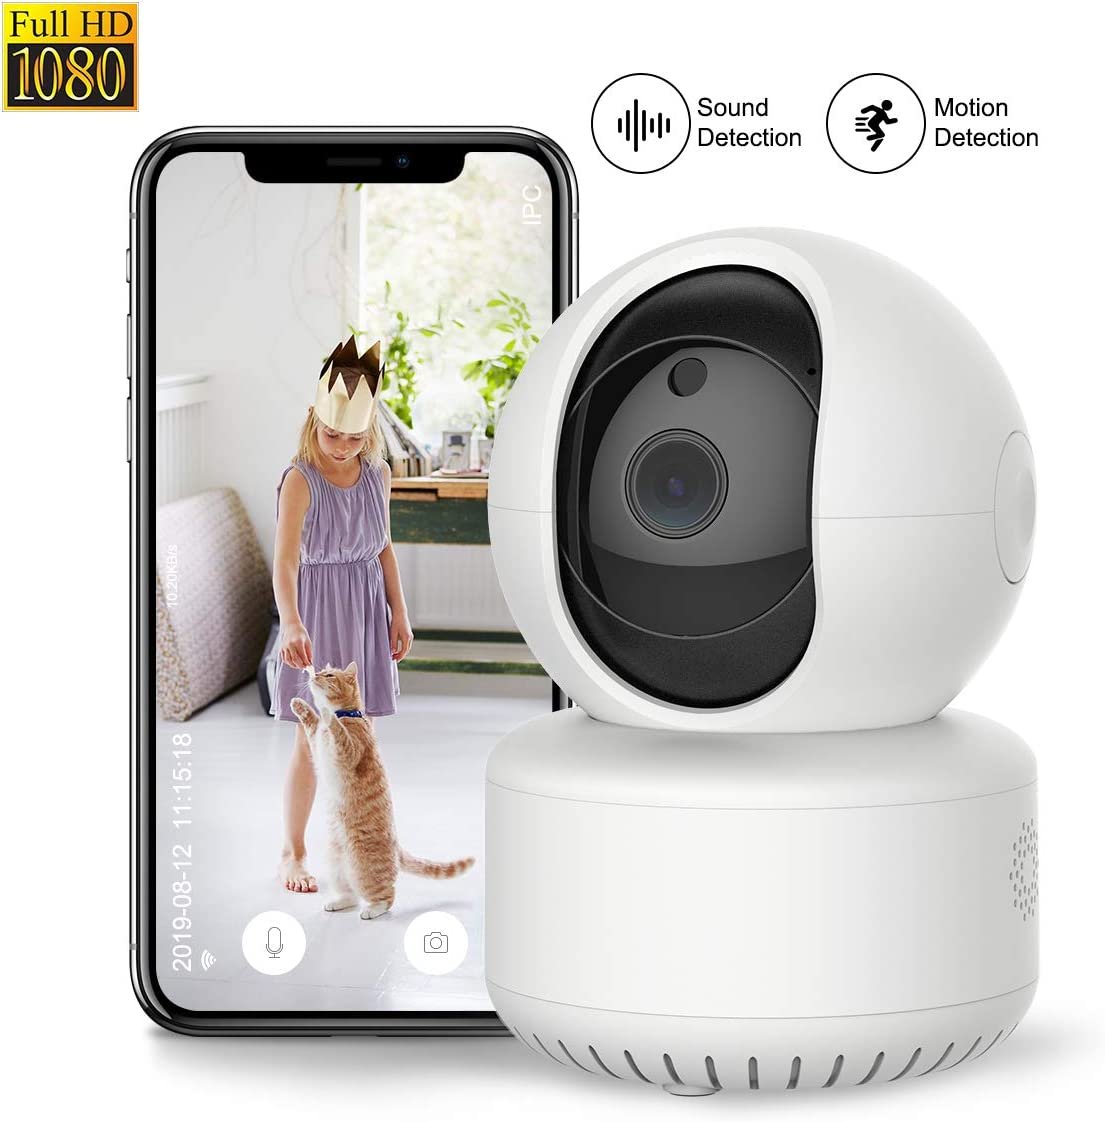 1080P WiFi Pet Camera FHD Indoor Wireless Surveillance Security IP Camera with Motion Detection Night Vision 2-Way Audio Cloud Storage for Baby Elder Pet Monitor with Camera Dome Surveillance Cameras